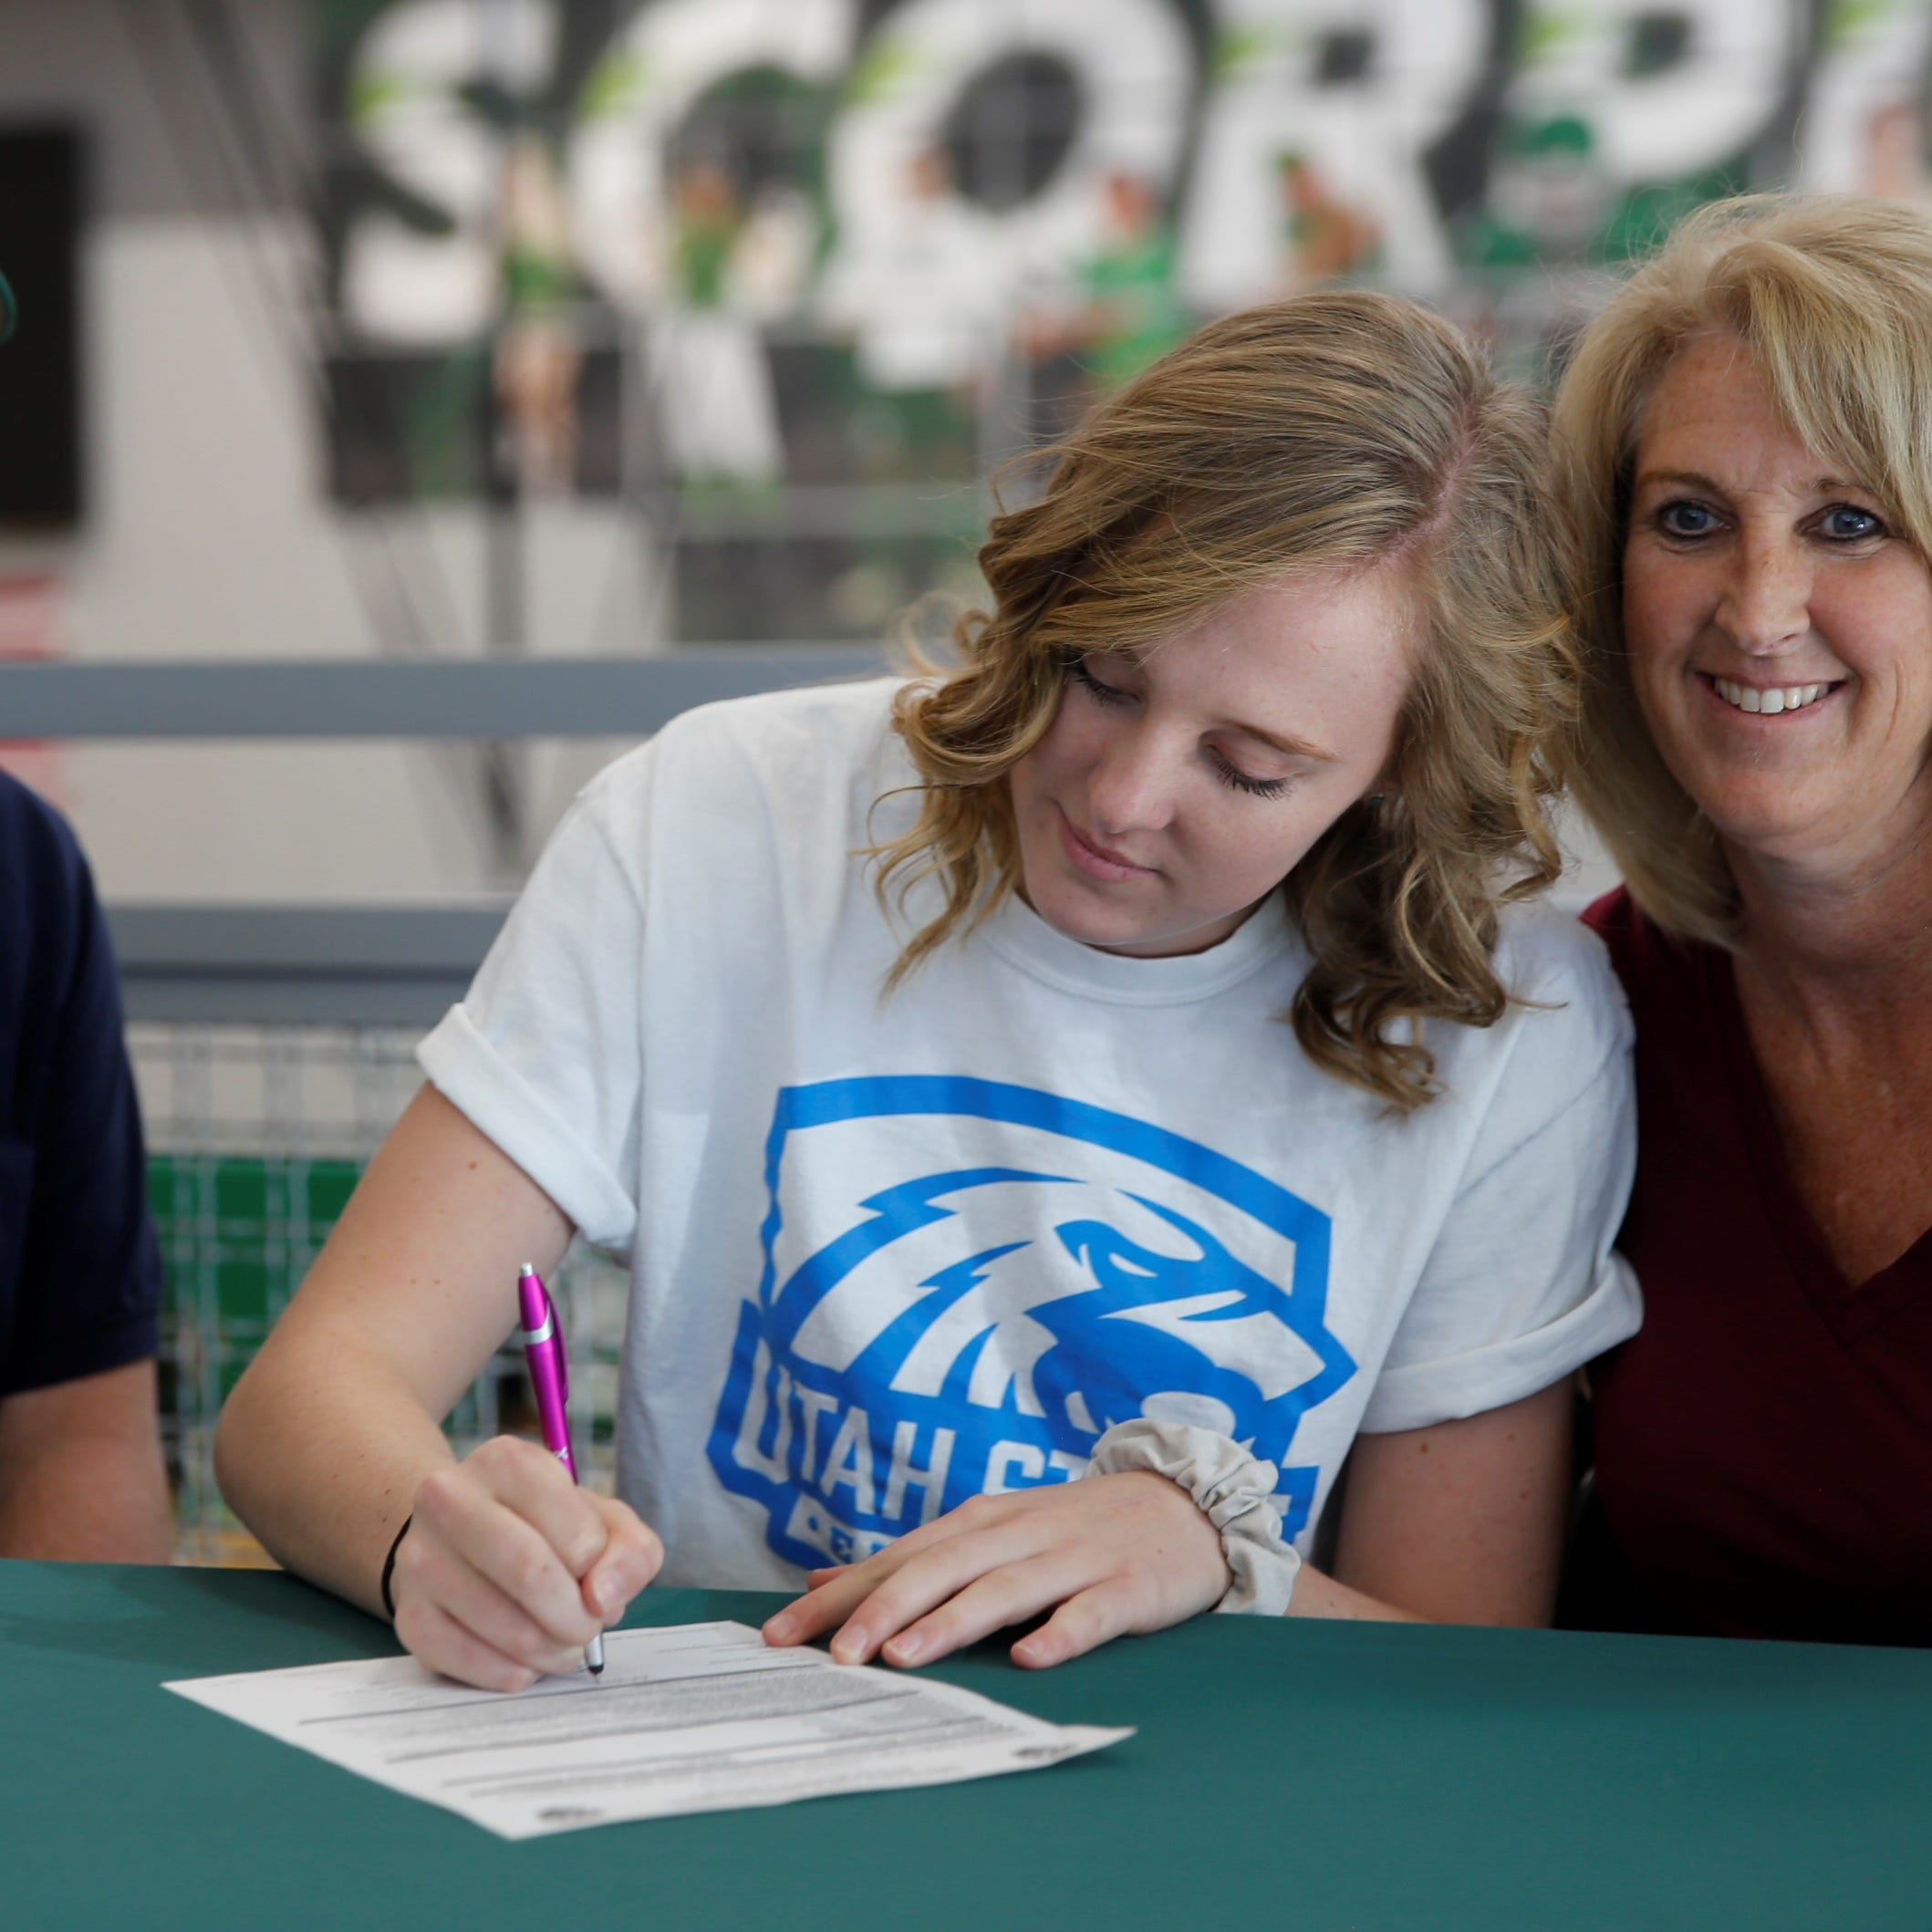 Farmington player signs with Utah State Eastern volleyball